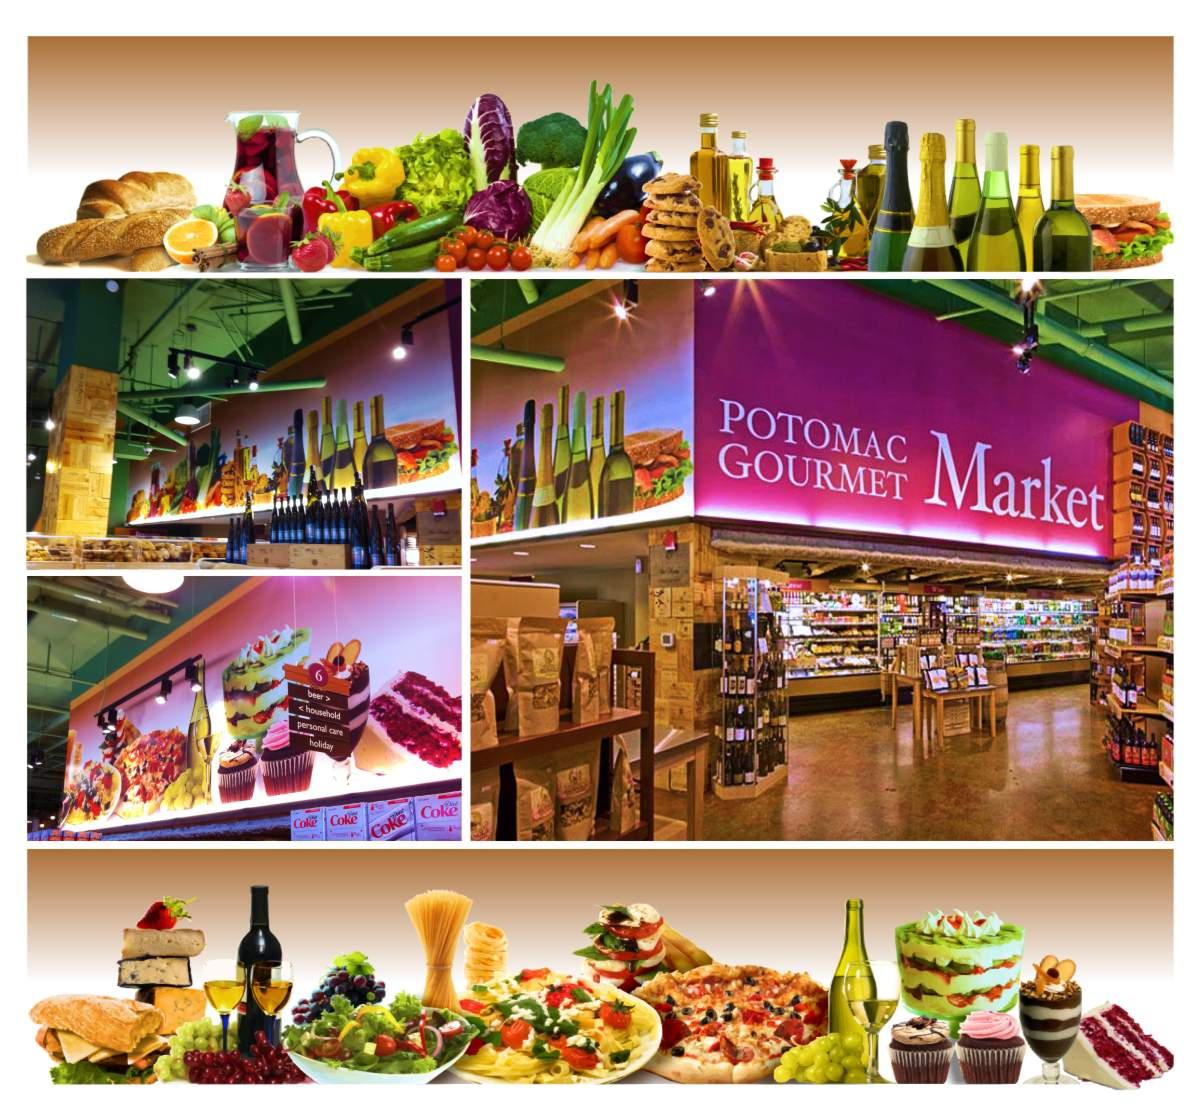 Potomac Gourmet Market at National Harbor is a specialty food and wine merchant. This photo shows two compositions of delicious food in still life wall murals, each 48 inches tall and 25 feet long that include a mouth watering array of colors depicted from left to right with crusty loaves of artisan bread, a pitcher of blood orange sangria, red and yellow peppers, red cabbage, green shallots, purple eggplant, orange carrots, stacks of chocolate chip cookies, tall bottles of golden seasoned herb olive oils, bruchetta, a series of 6 wine bottles with green glass, backlit chardonnay white wine wrapped with gold or black foil and neck bands, followed by a club sandwich on toasted sesame seed bread. The second mural features cheese and cured meats on a crusty French baguette, a stack of creamy white and orange cheeses with black or natural rinds, next to two wine filled goblets with blue stems in front of bunches of green and red grapes, a white bowl with a mixed green salad, a plate of pasta topped with fresh basil, shaved cheese and fresh tomatoes, with a fan of tall dried spaghetti and stacks of dried linguini pasta nests standing behind the plate, next is a stack of fresh mozzarella layered with fresh tomatoes, olives and cracked  ground pepper, a bubbly crusted pepperoni pizza, and ending with sumptuous desserts including a multi layer strawberry and kiwi trifle, two chocolate cupcakes with mocha and strawberry icing, a vanilla and chocolate layered mousse in a goblet and a thick slice of cream cheese frosted red velvet cake. Graphic design by Mark Ksiazewski at Centre Street Creative